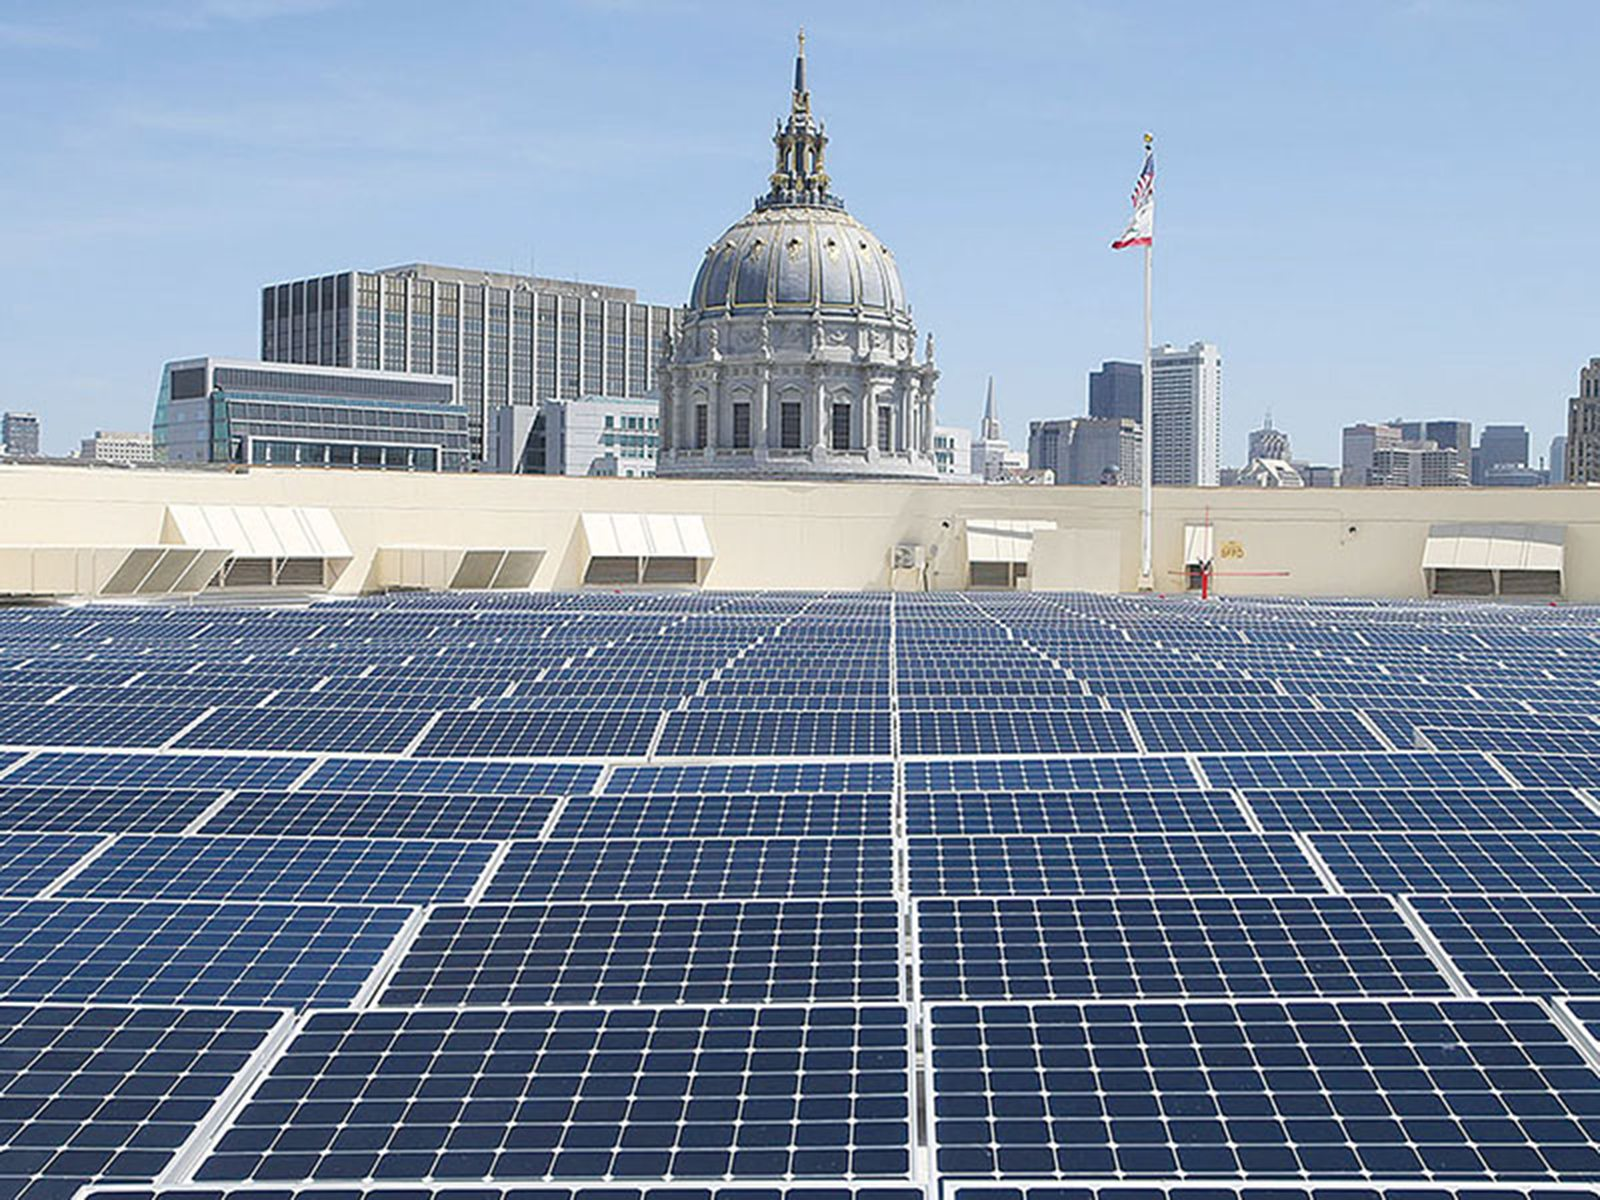 Some Iconic Or Landmark Buildings That Use Solar Power